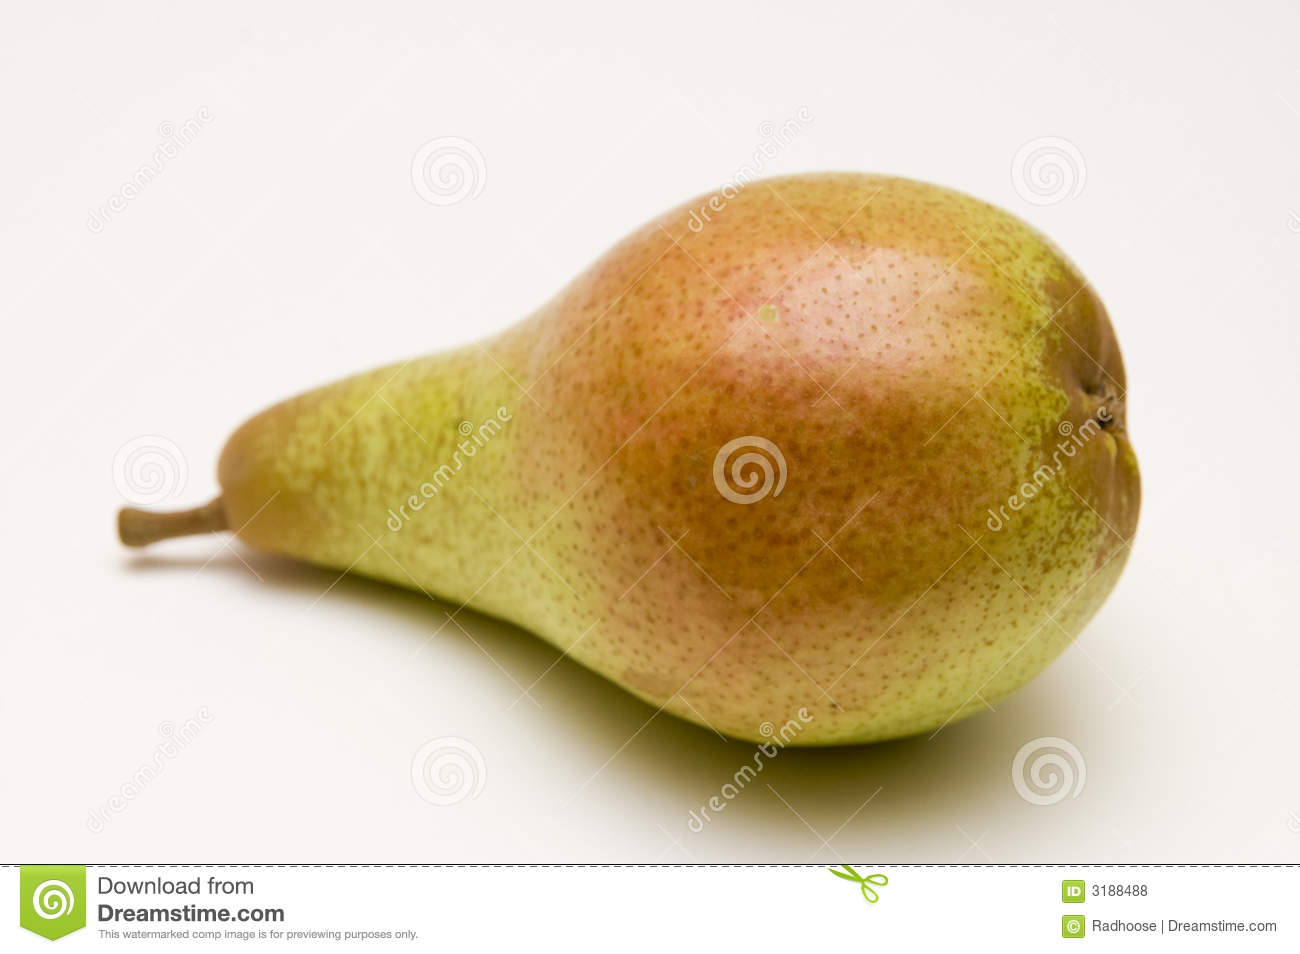 One red-green pear